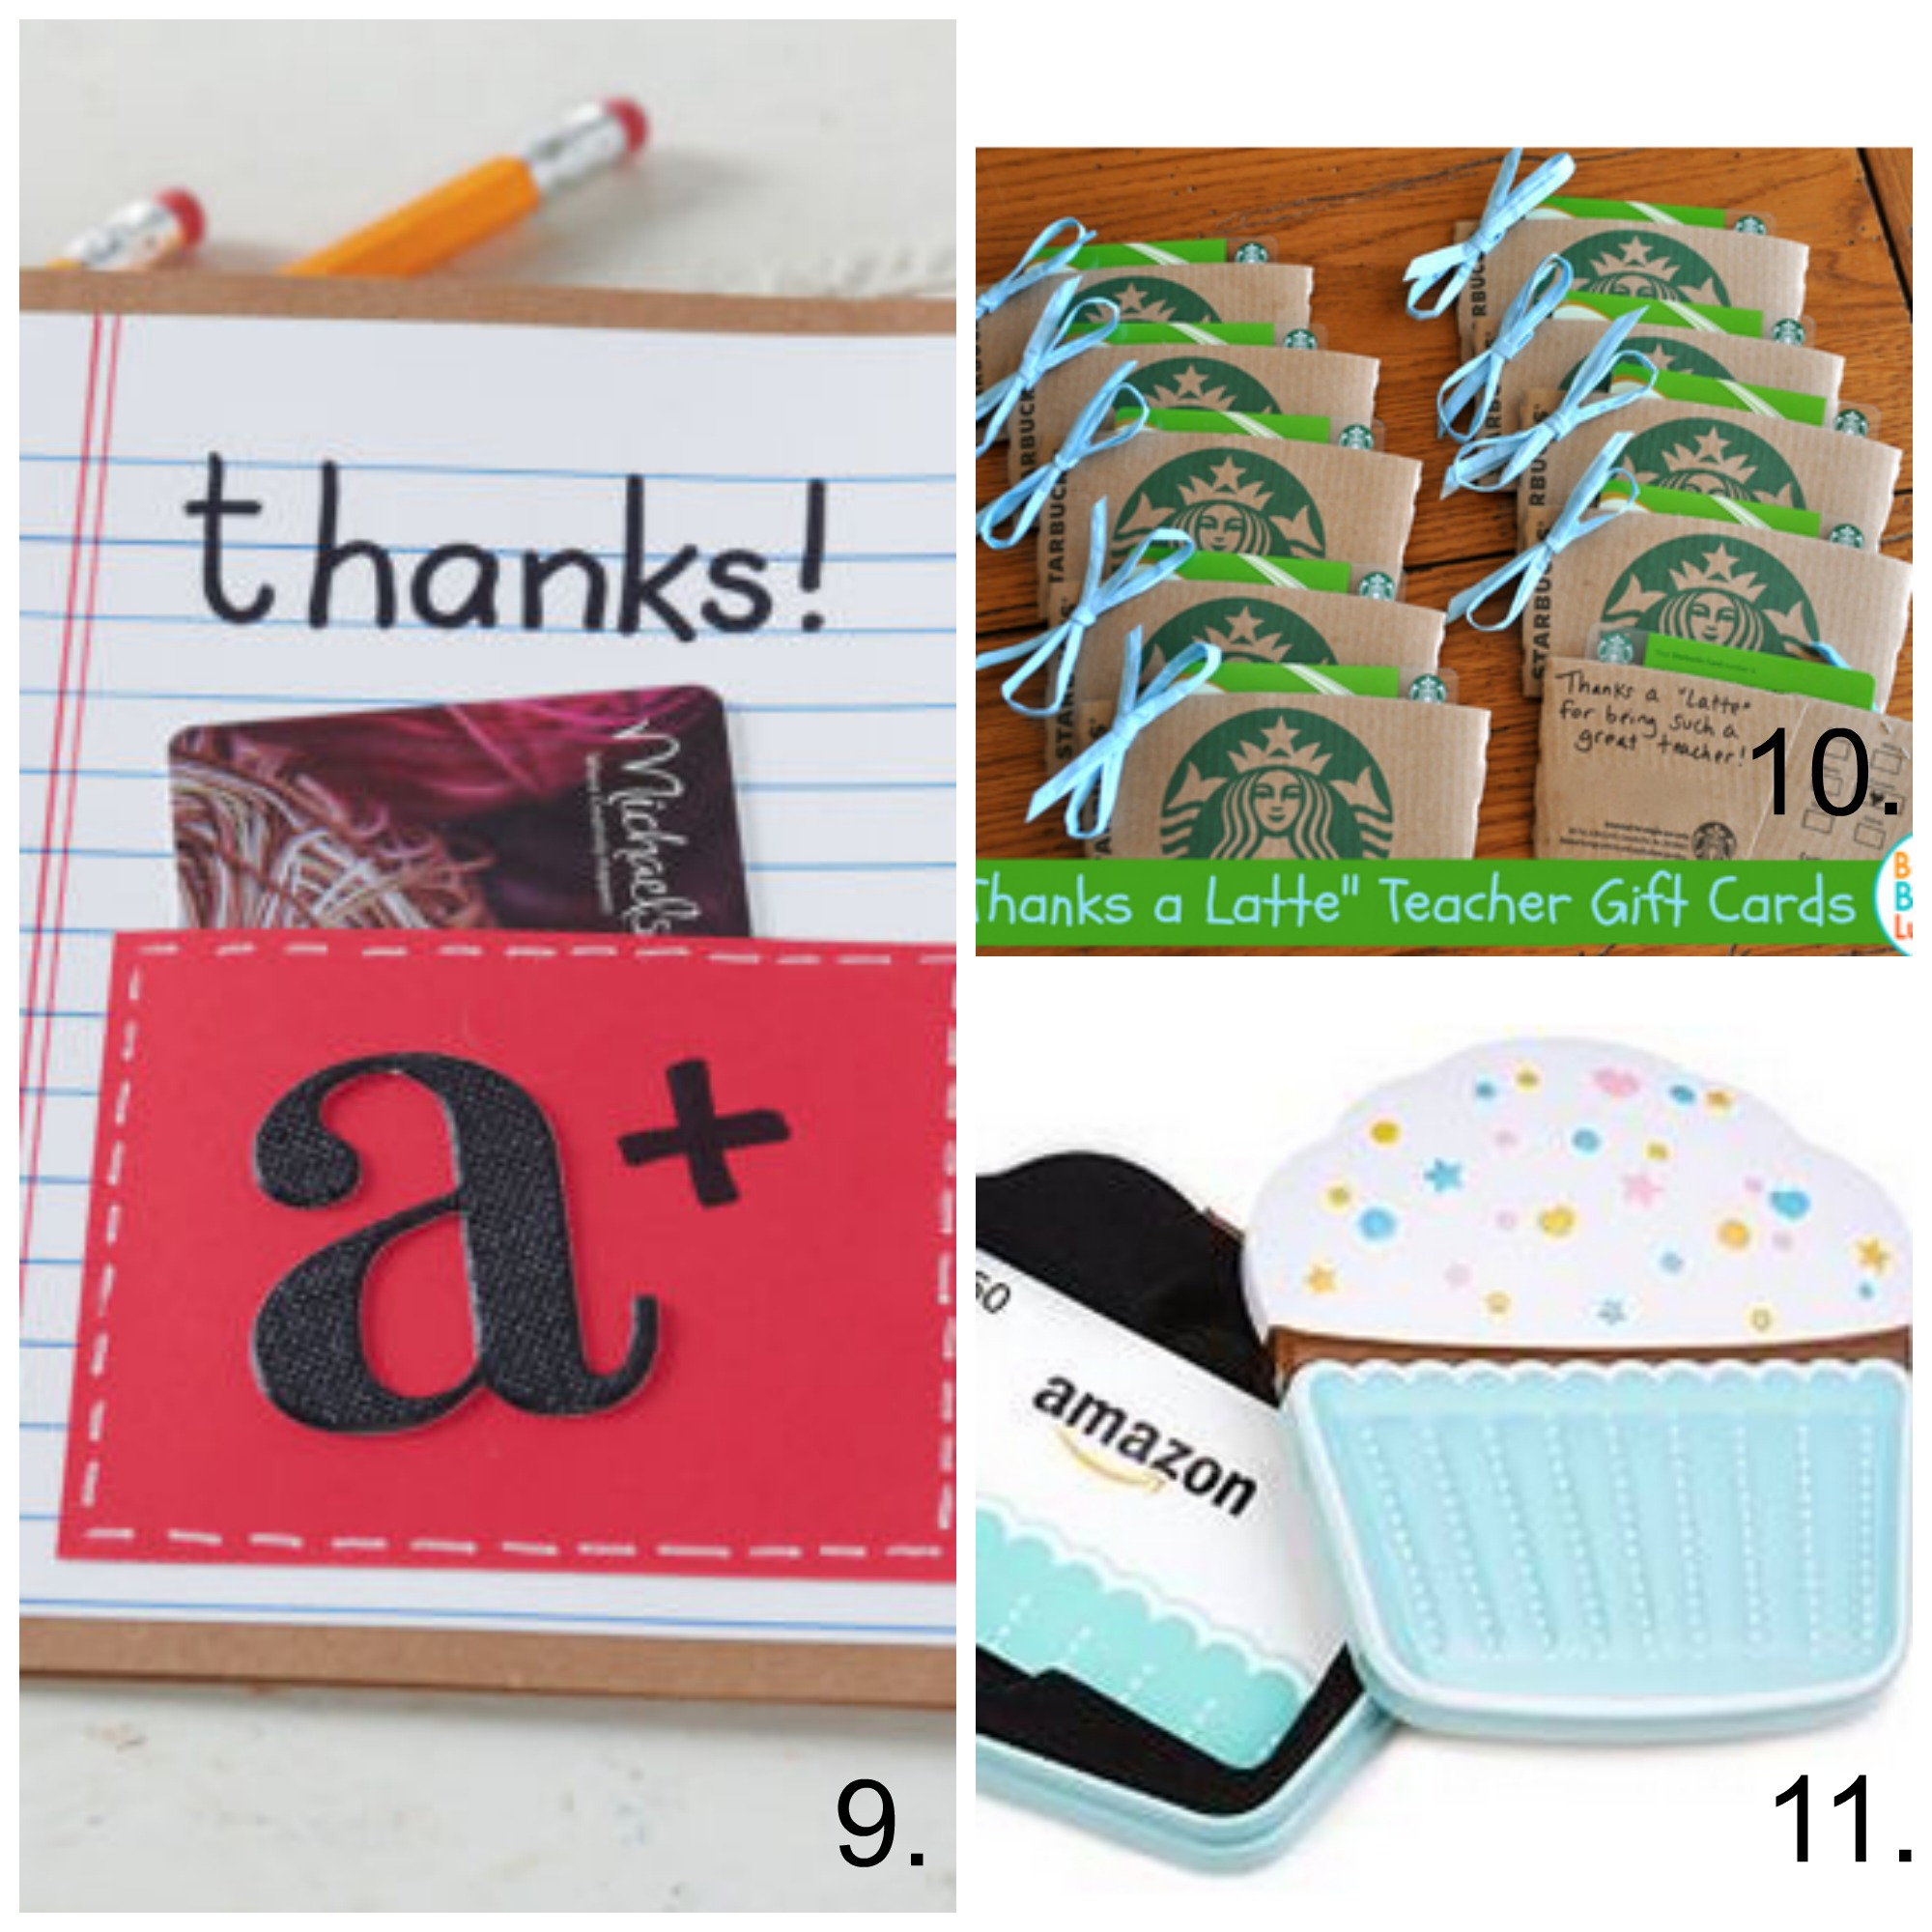 photograph relating to Barnes and Noble Printable Gift Card named 25 Astounding Instructor Appreciation Reward Strategies - My Frugal